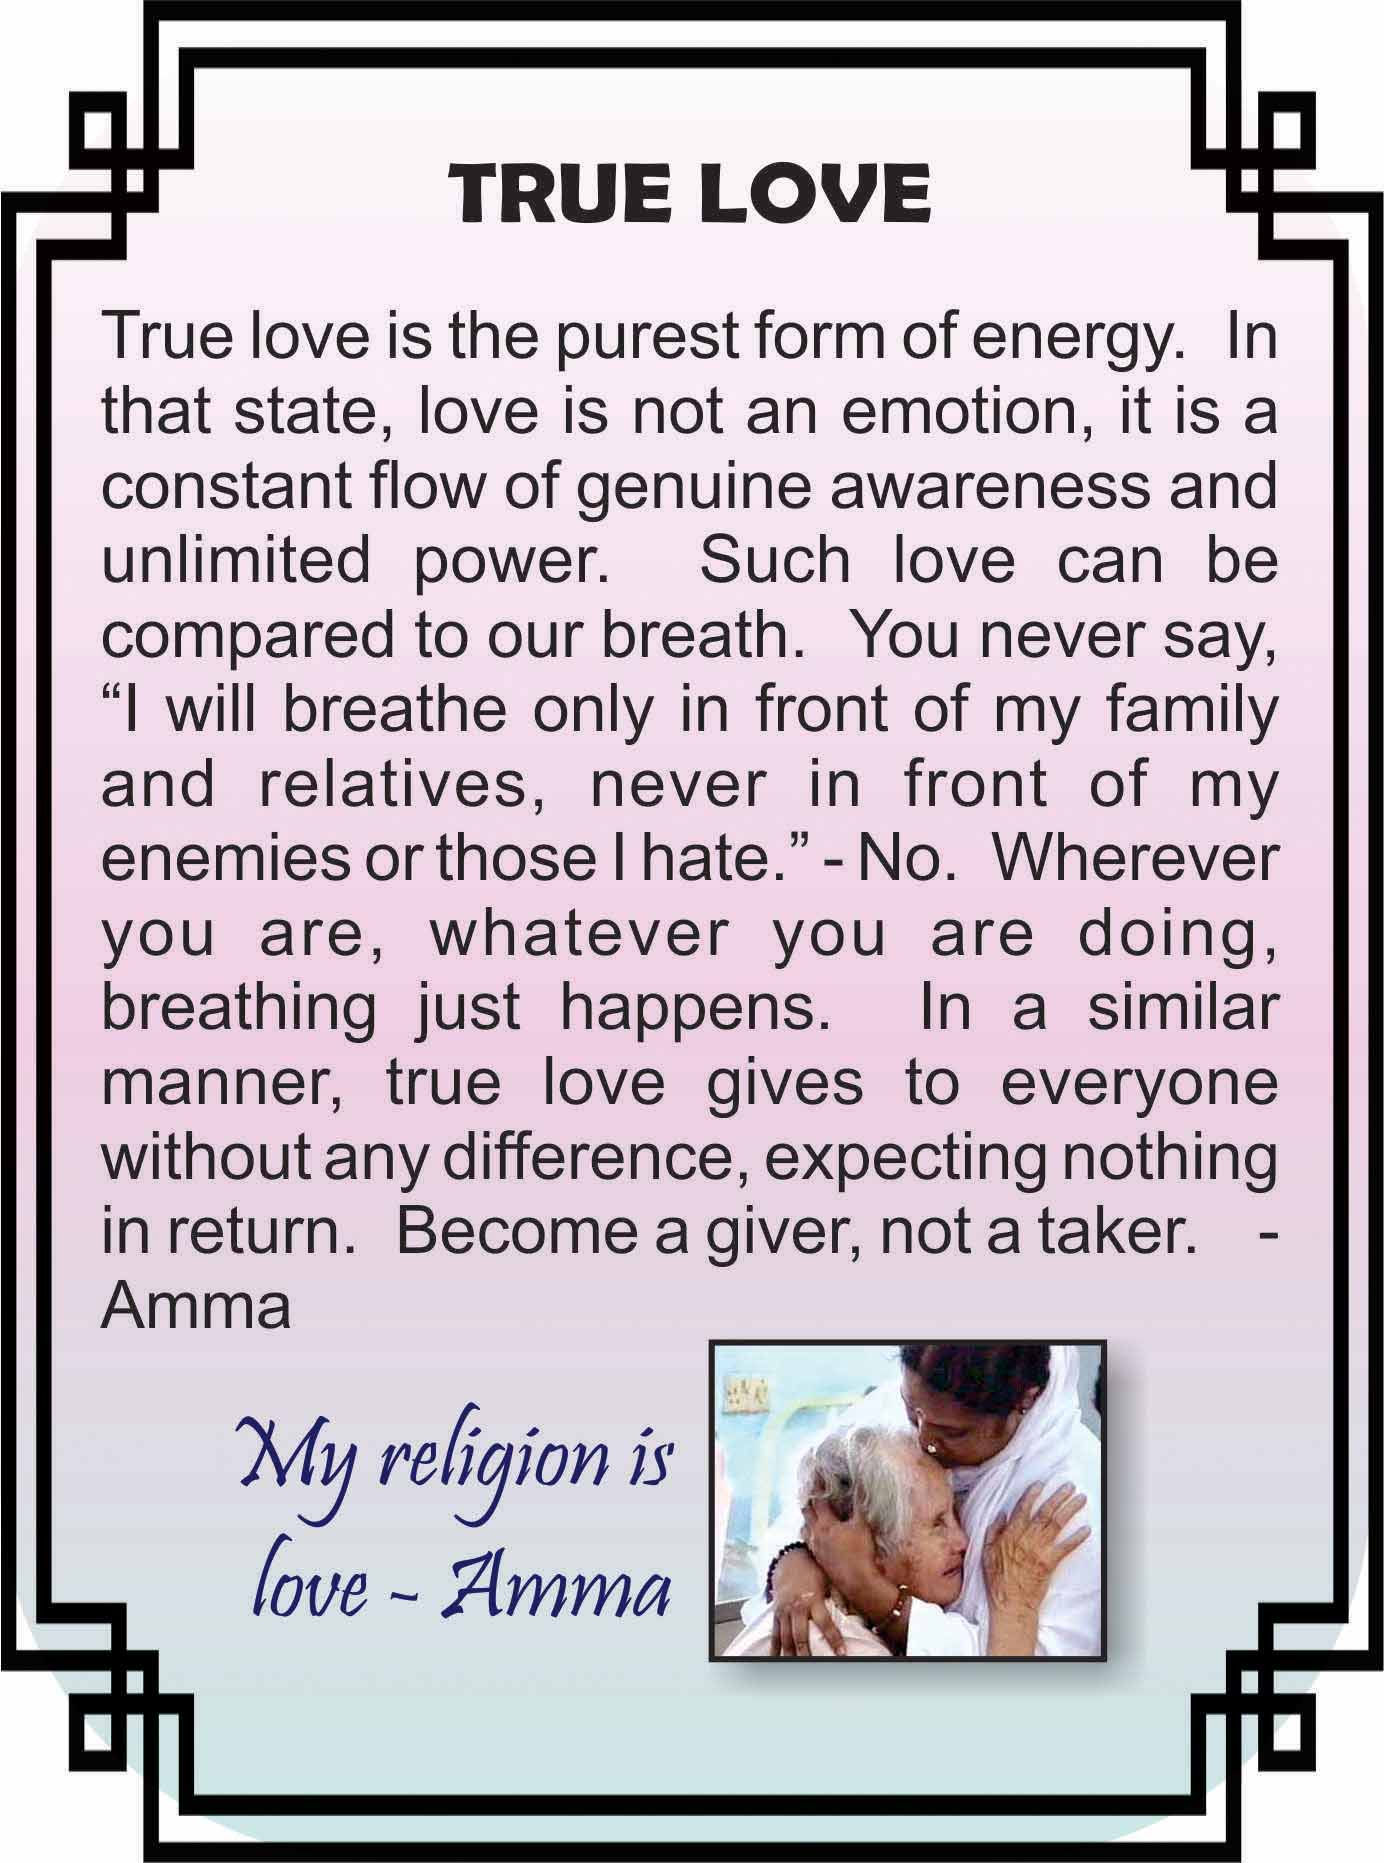 True love is awareness